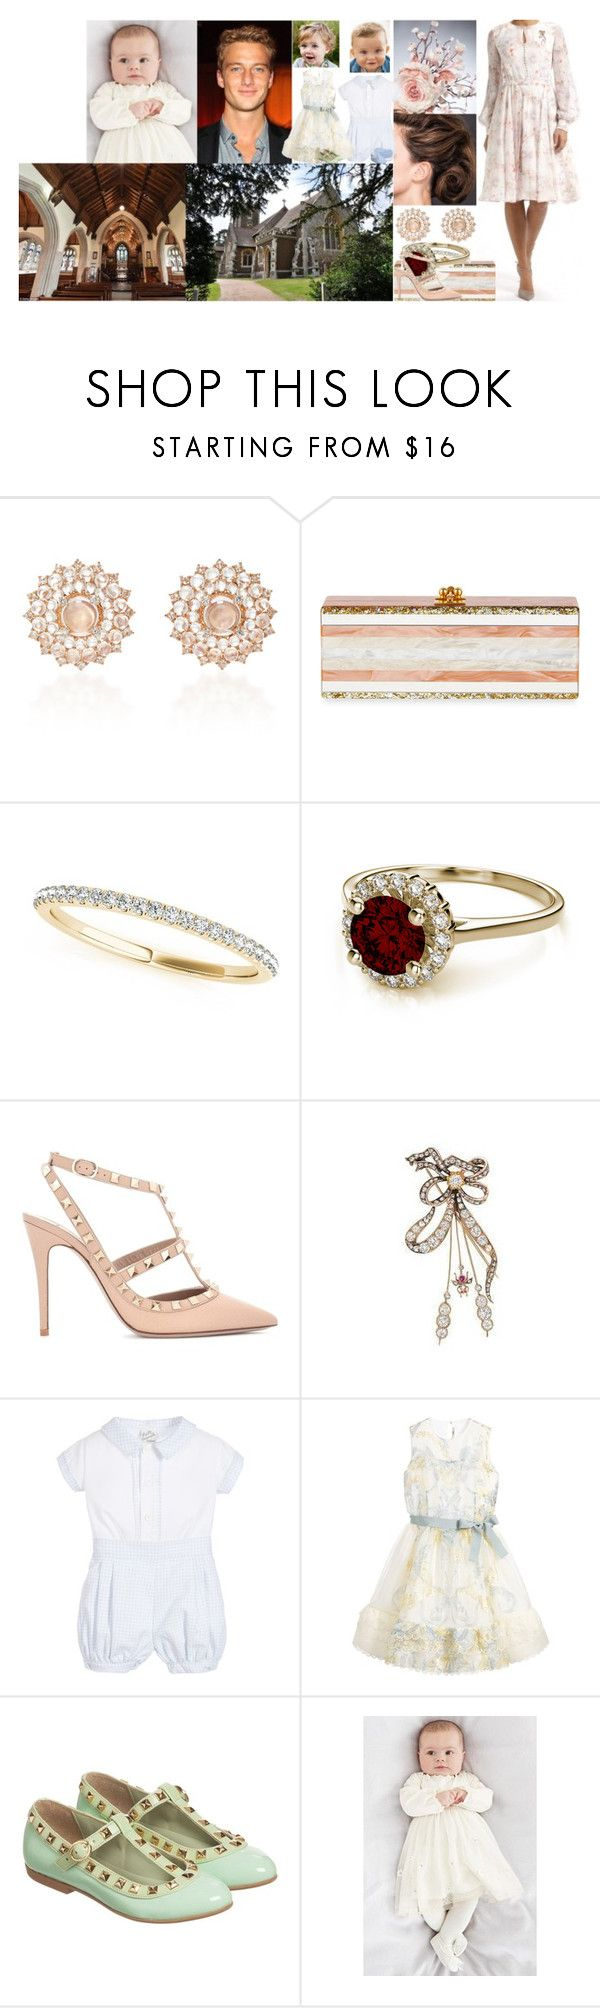 """Anne, Daniel, katharina and Konstantin Winter at the christening of their niece and cousin, Princess Frances of Clarence"" by charlottedebora ❤ liked on Polyvore featuring Rachel Trevor-Morgan, Beulah, Nam Cho, Edie Parker, Allurez, Valentino, GALA, Fendi and step2wo"